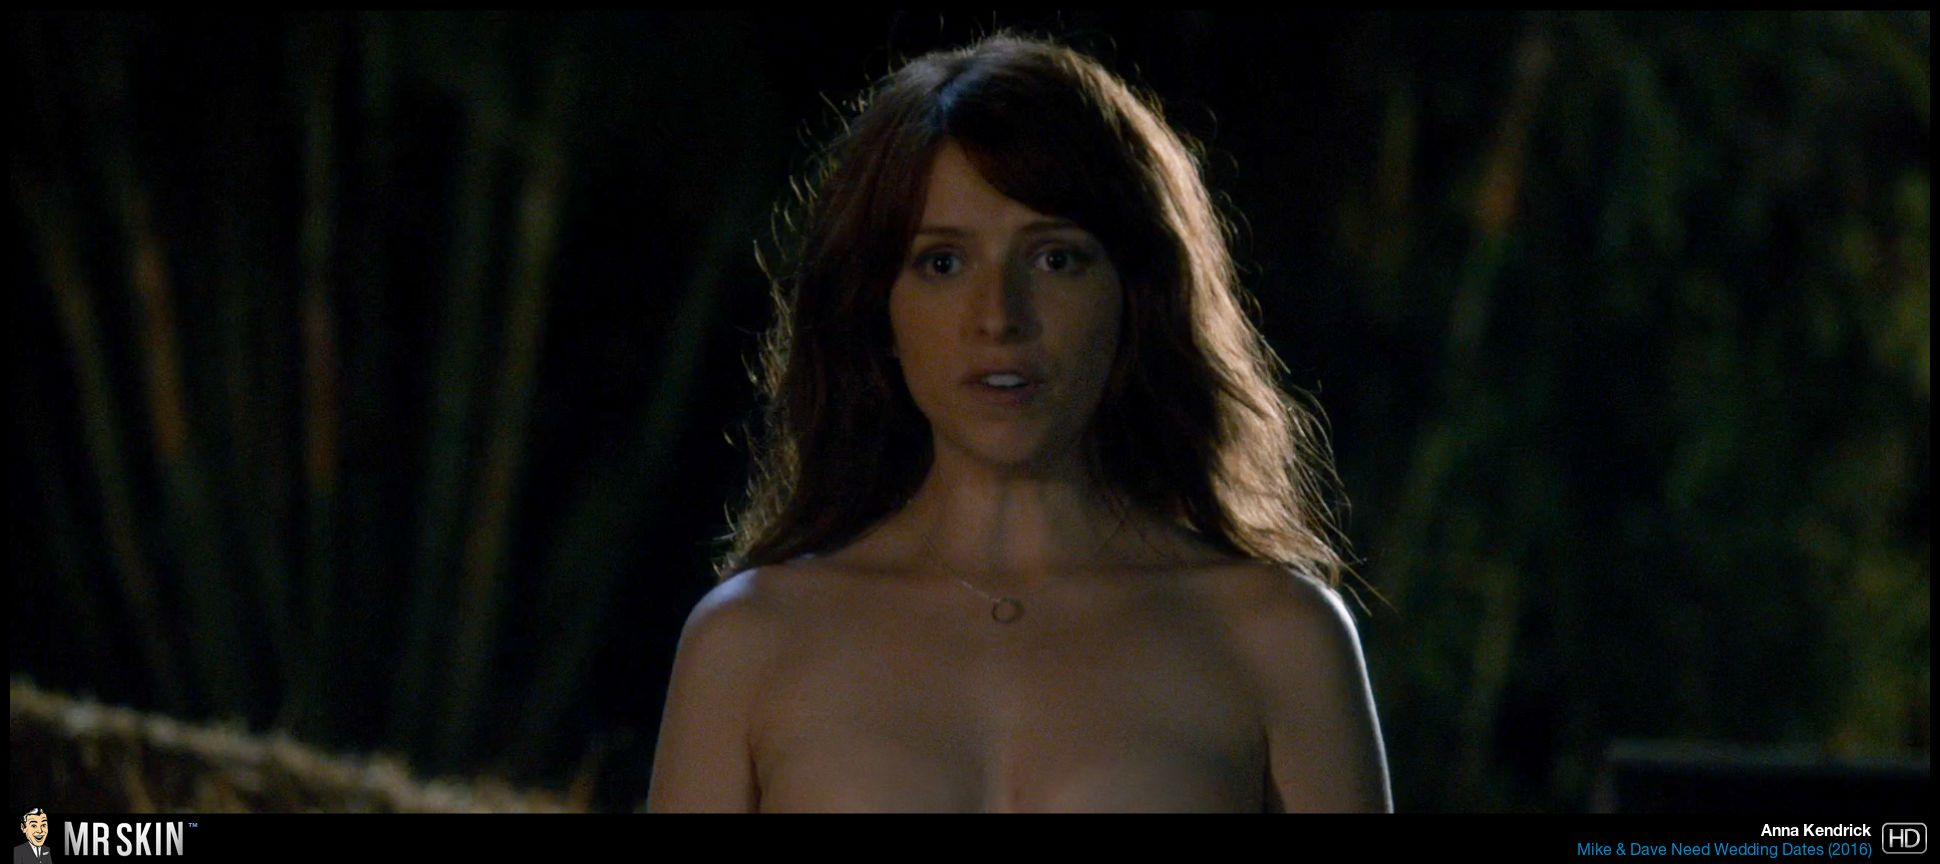 Ruta gedmintas and india wadsworth in a lesbian scene - 3 1